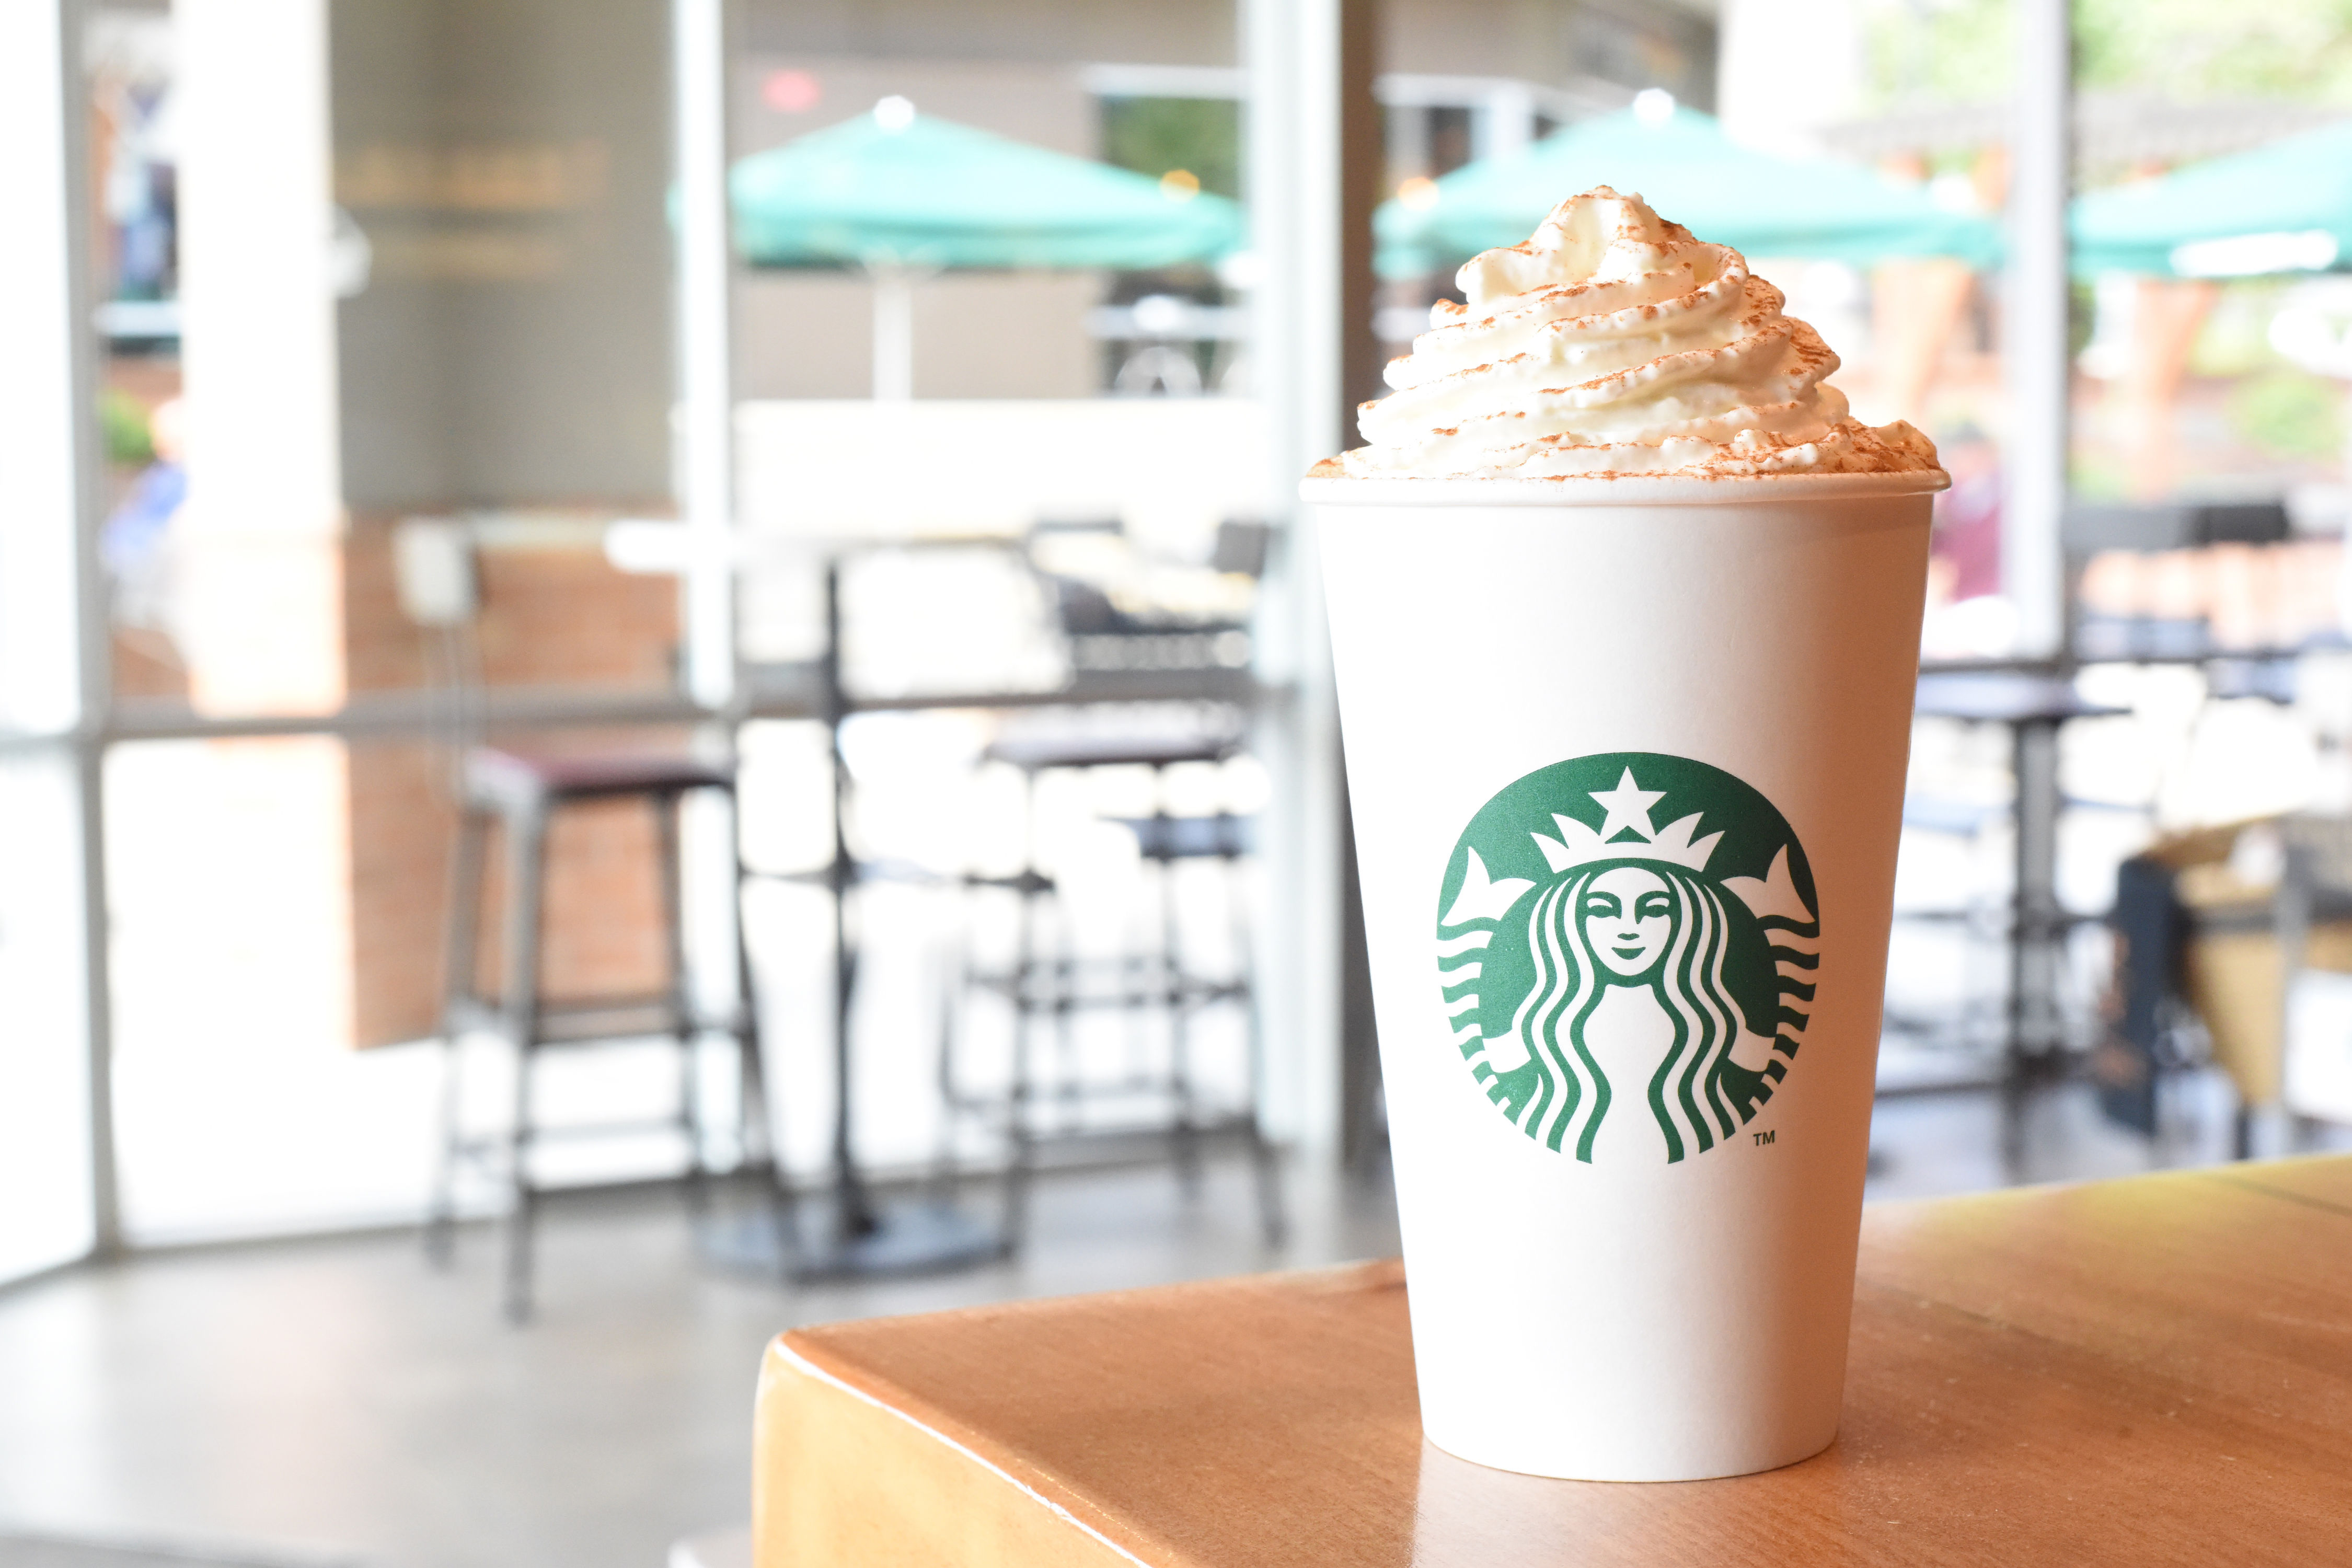 Pumpkin Spice Lattes Are Officially Returning to Starbucks This Month, the Earliest Ever